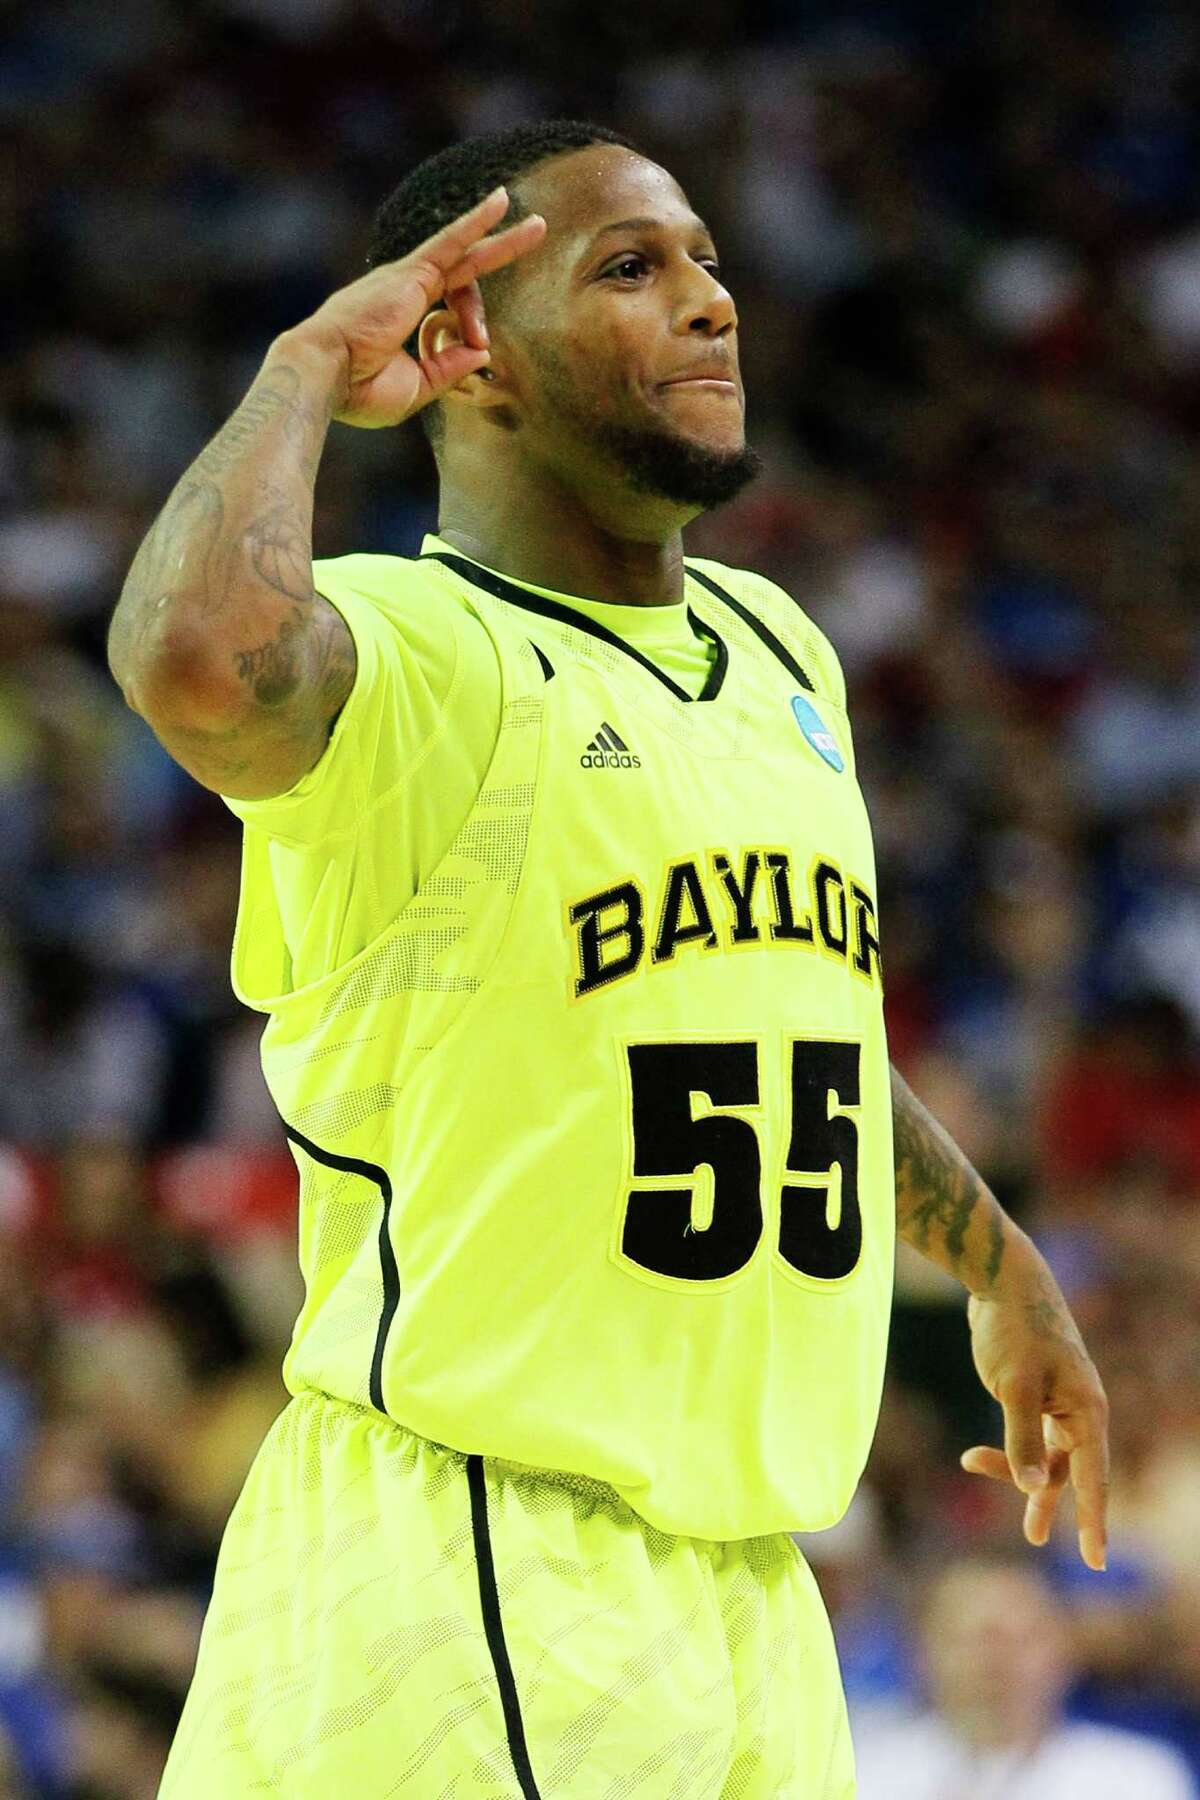 Baylor senior guard Pierre Jackson has the respect of Big 12 coaches as the conference's preseason player of the year.